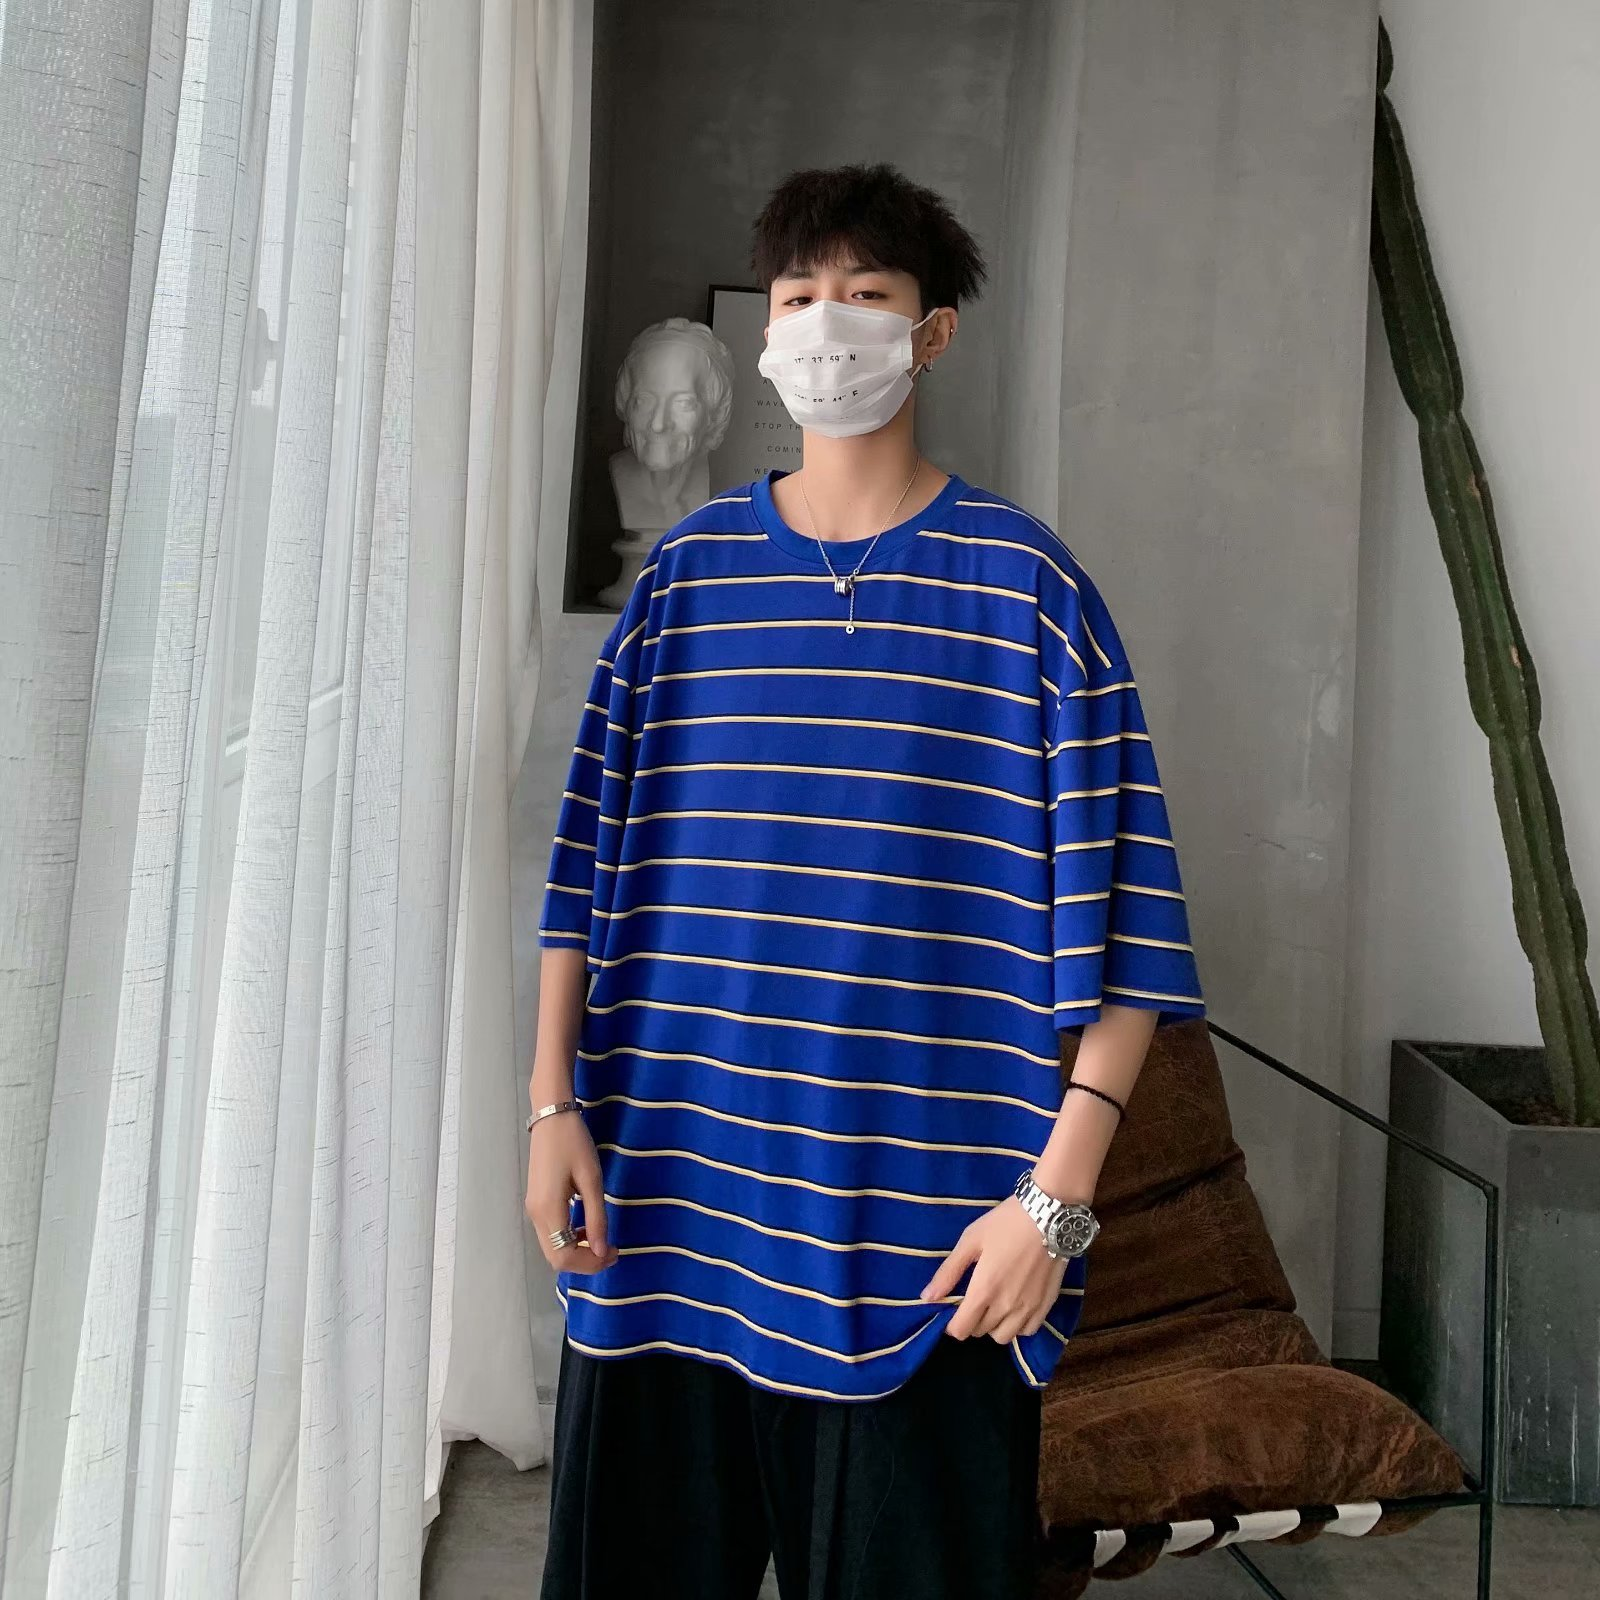 2020 New Hit Color <font><b>Korean</b></font> <font><b>Style</b></font> Cotton T <font><b>Shirt</b></font> Hip Pop Round Neck Tshirt Boyfriend Gift <font><b>Oversize</b></font> Striped T-<font><b>shirt</b></font> <font><b>Men</b></font> Short 2XL image